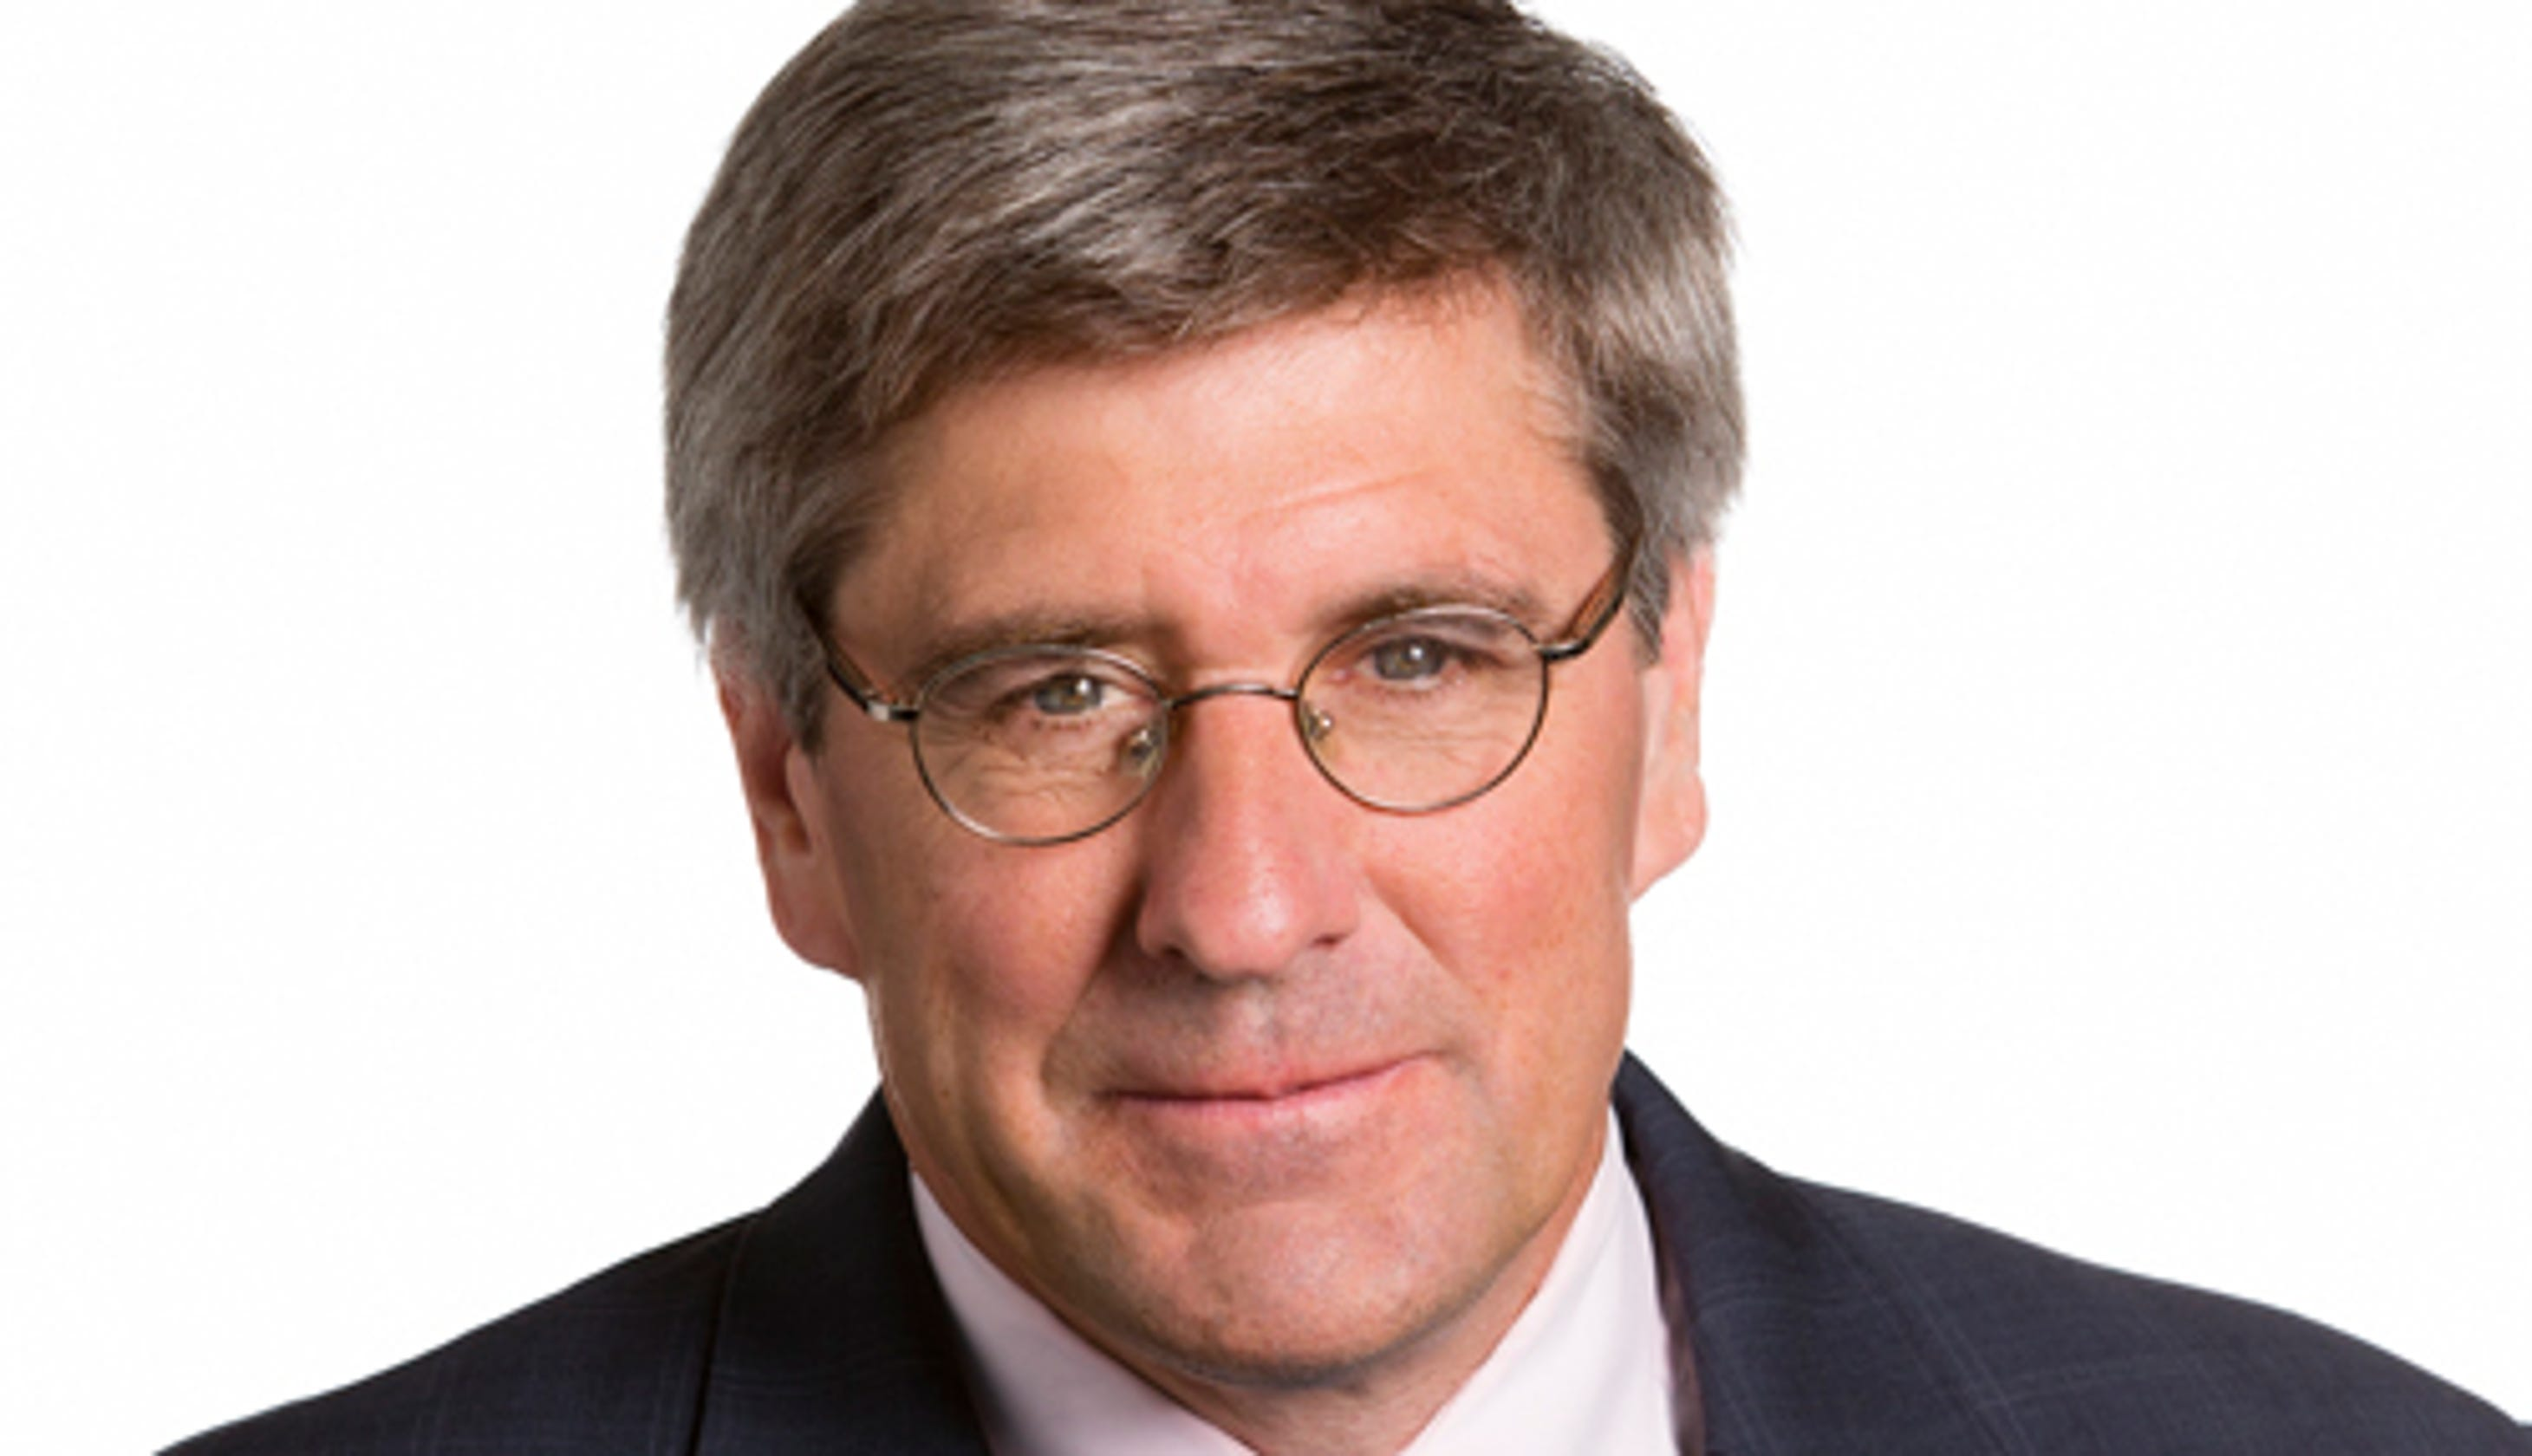 Donald Trump takes fresh shot at Fed with Stephen Moore pick